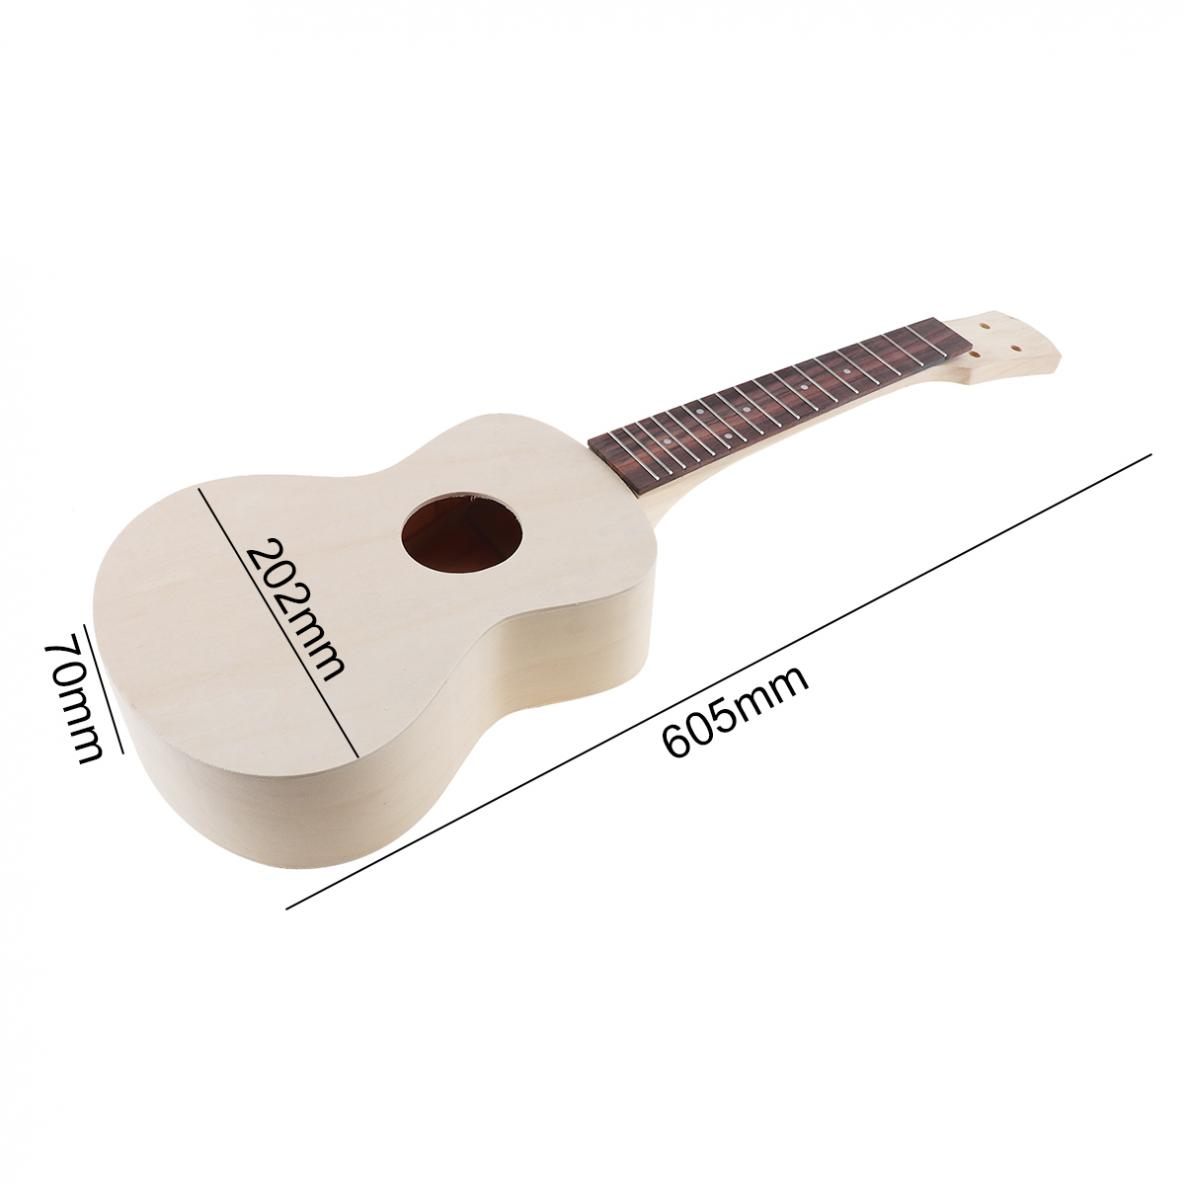 23 Inch Ukulele DIY Kit Professional Rosewood Fingerboard Hawaii Guitar for Handwork Painting Parents child Campaign in Ukulele from Sports Entertainment